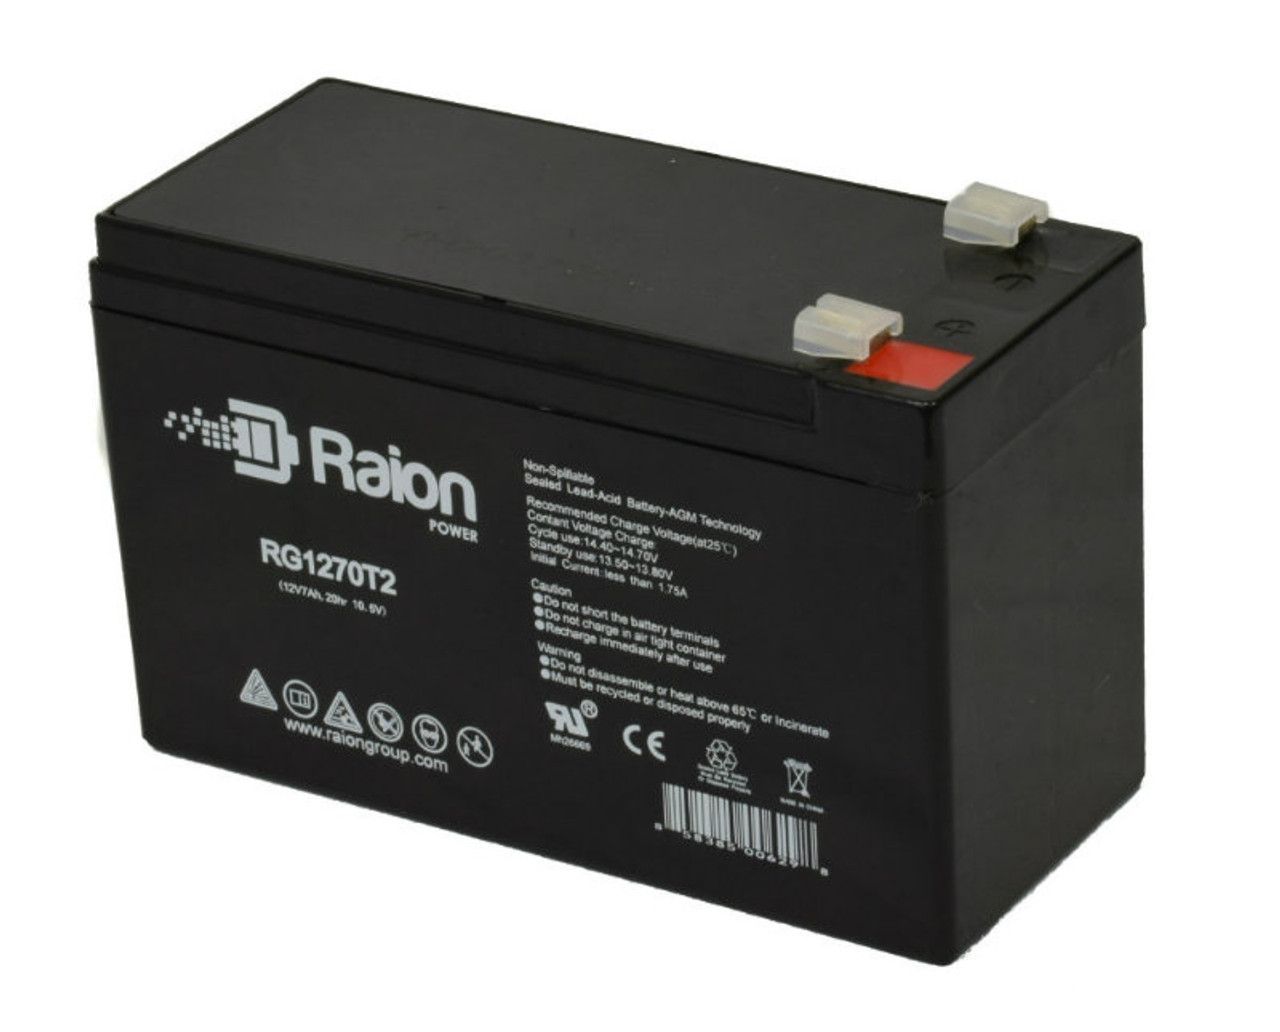 Raion Power RG1270T1 Replacement Battery for Sentry Battery PM1285